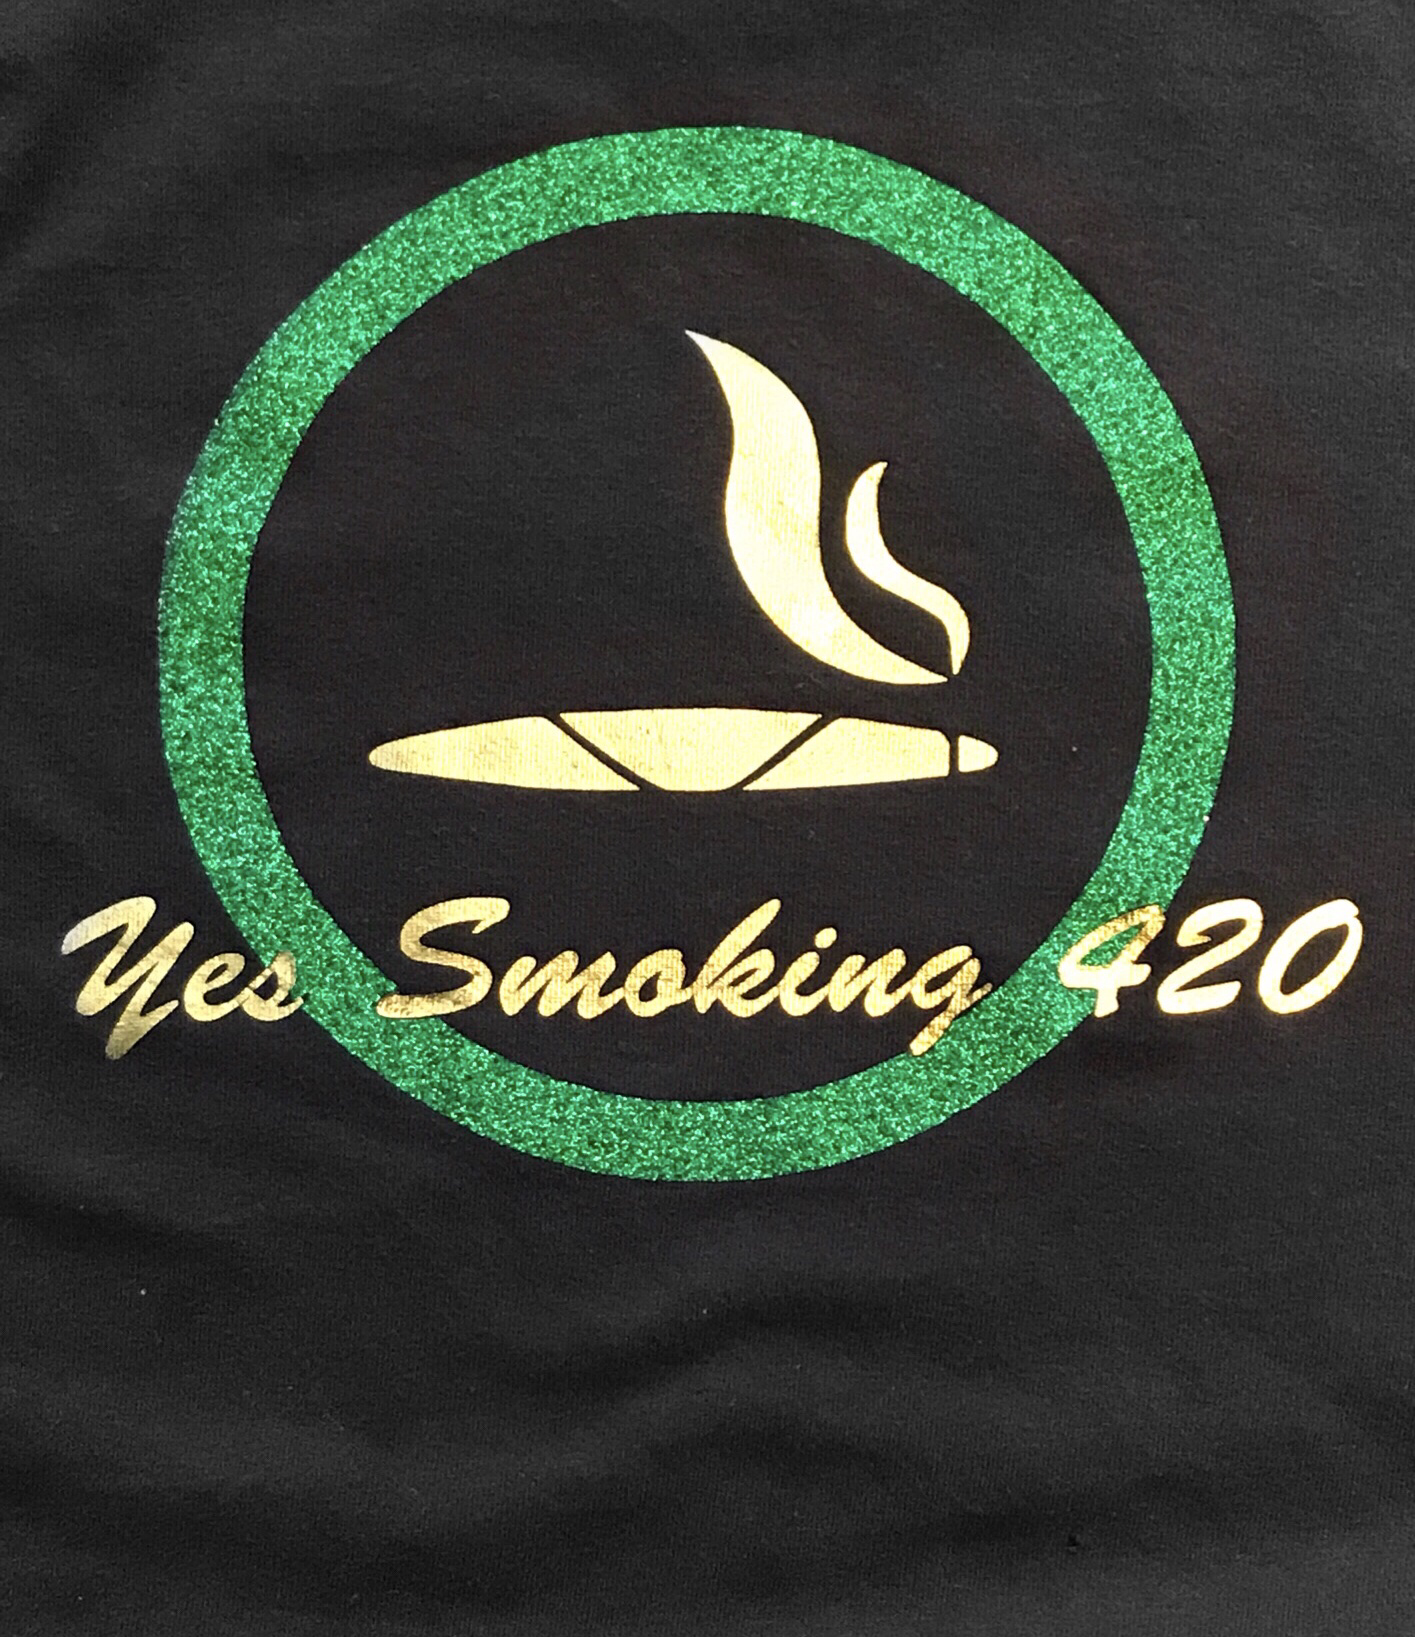 Yes Smoking 420 T-shirt ( grn glitter gold foil design )or grn/silver